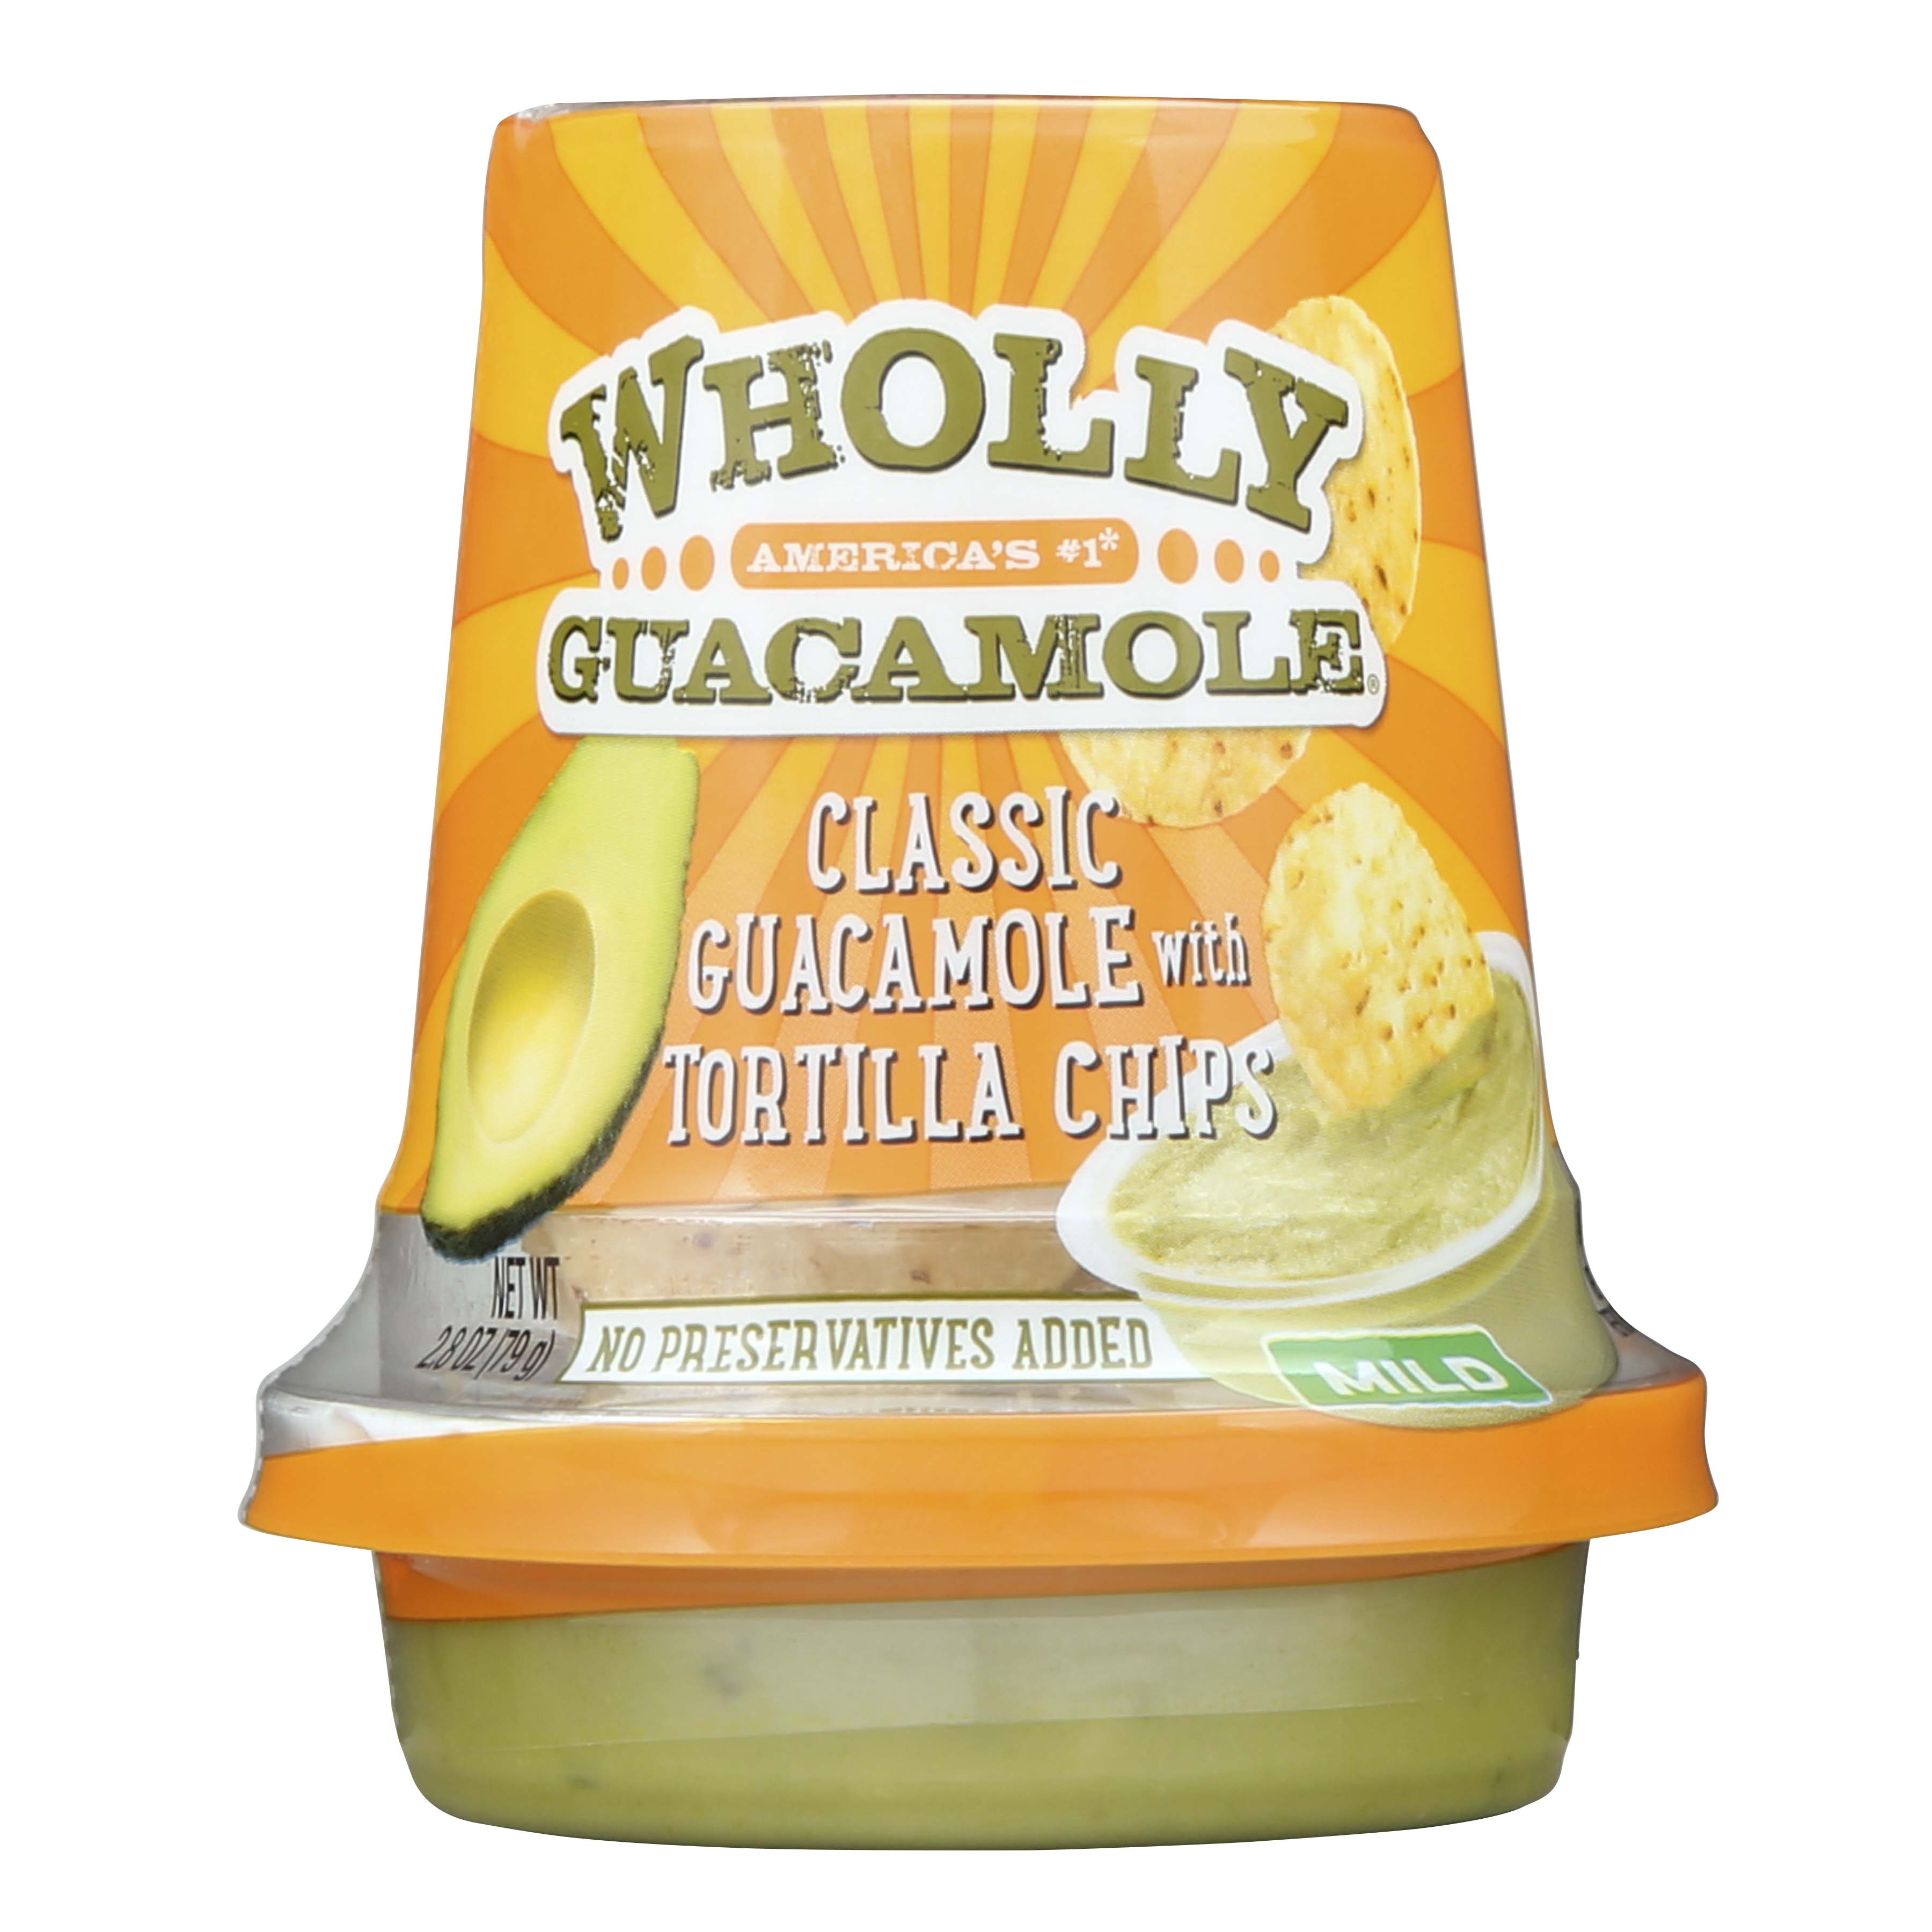 Wholly Guacamole Classic Snack Cup with Tortilla Chips, 2.8 oz